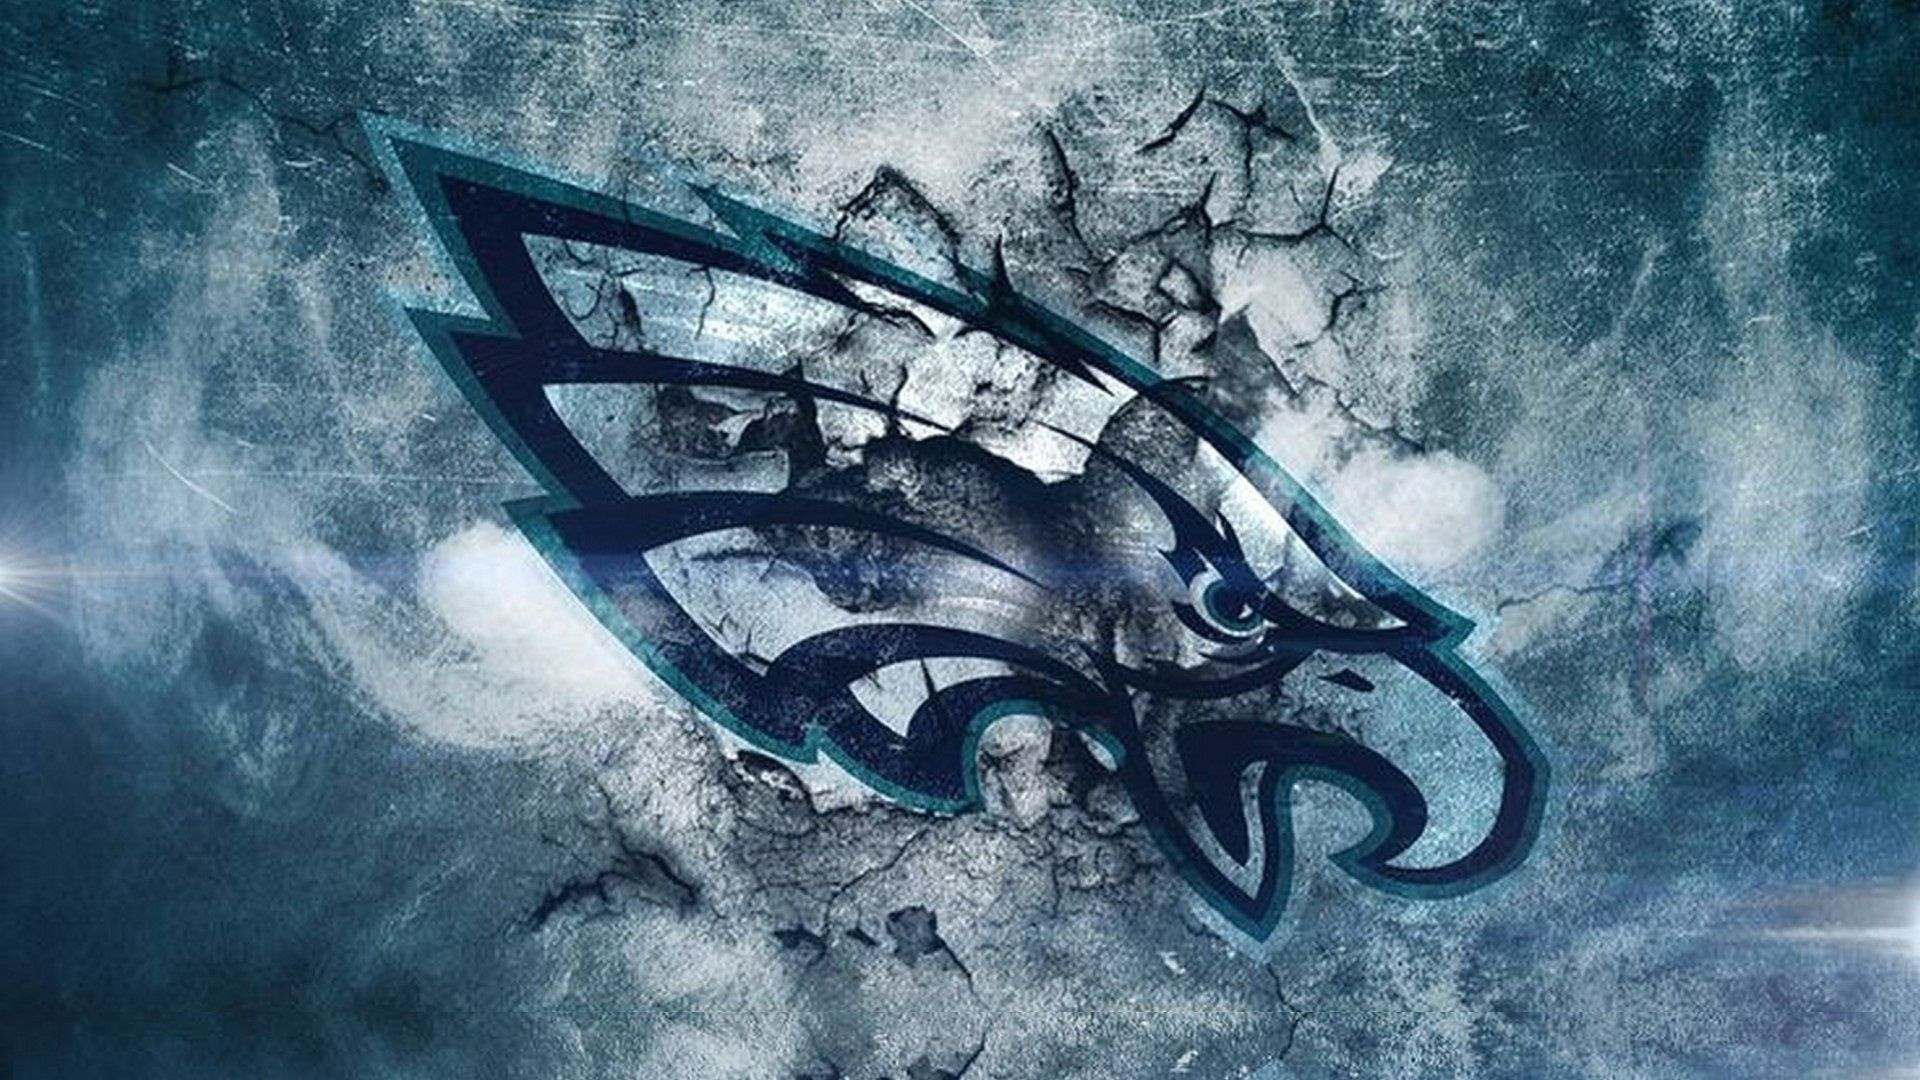 Wallpapers HD NFL Eagles Football wallpaper, Eagles